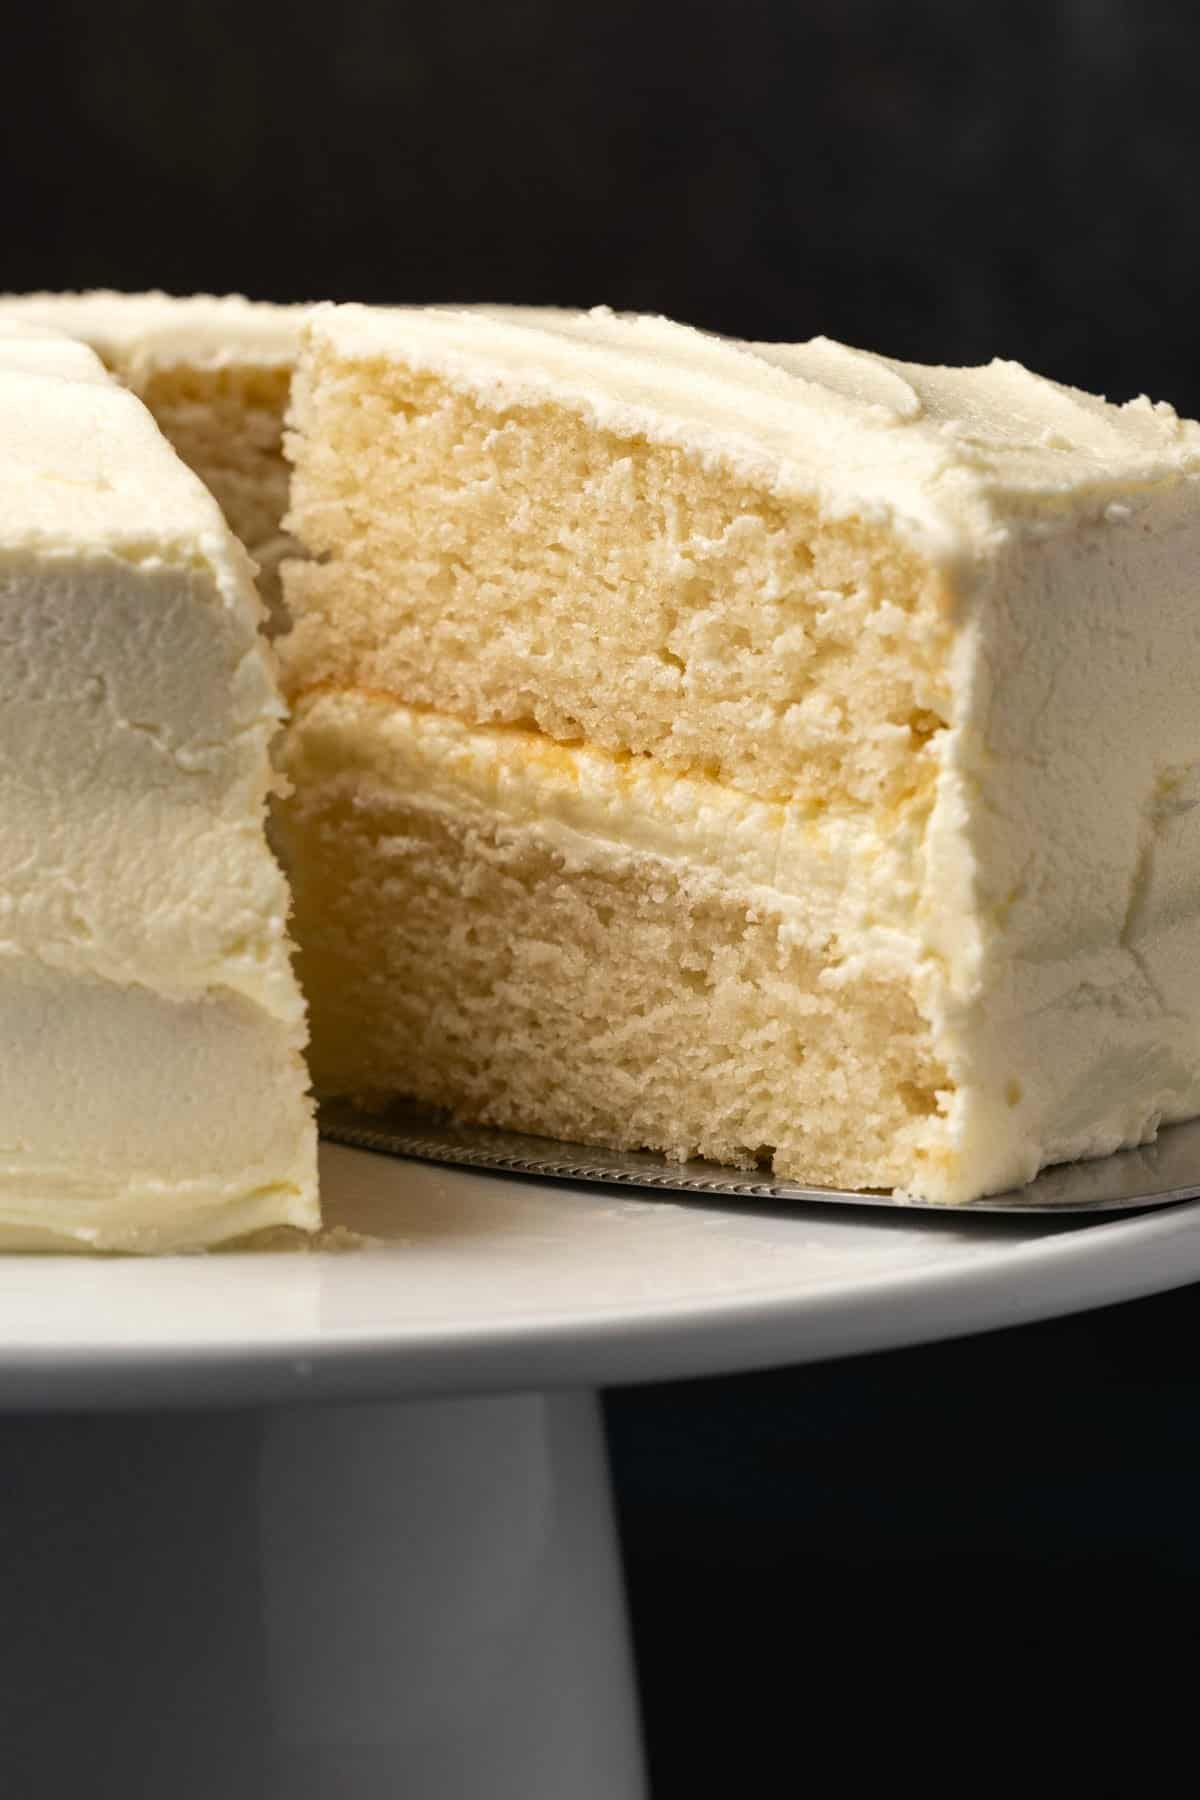 Vegan white cake with one slice cut on a white cake stand.